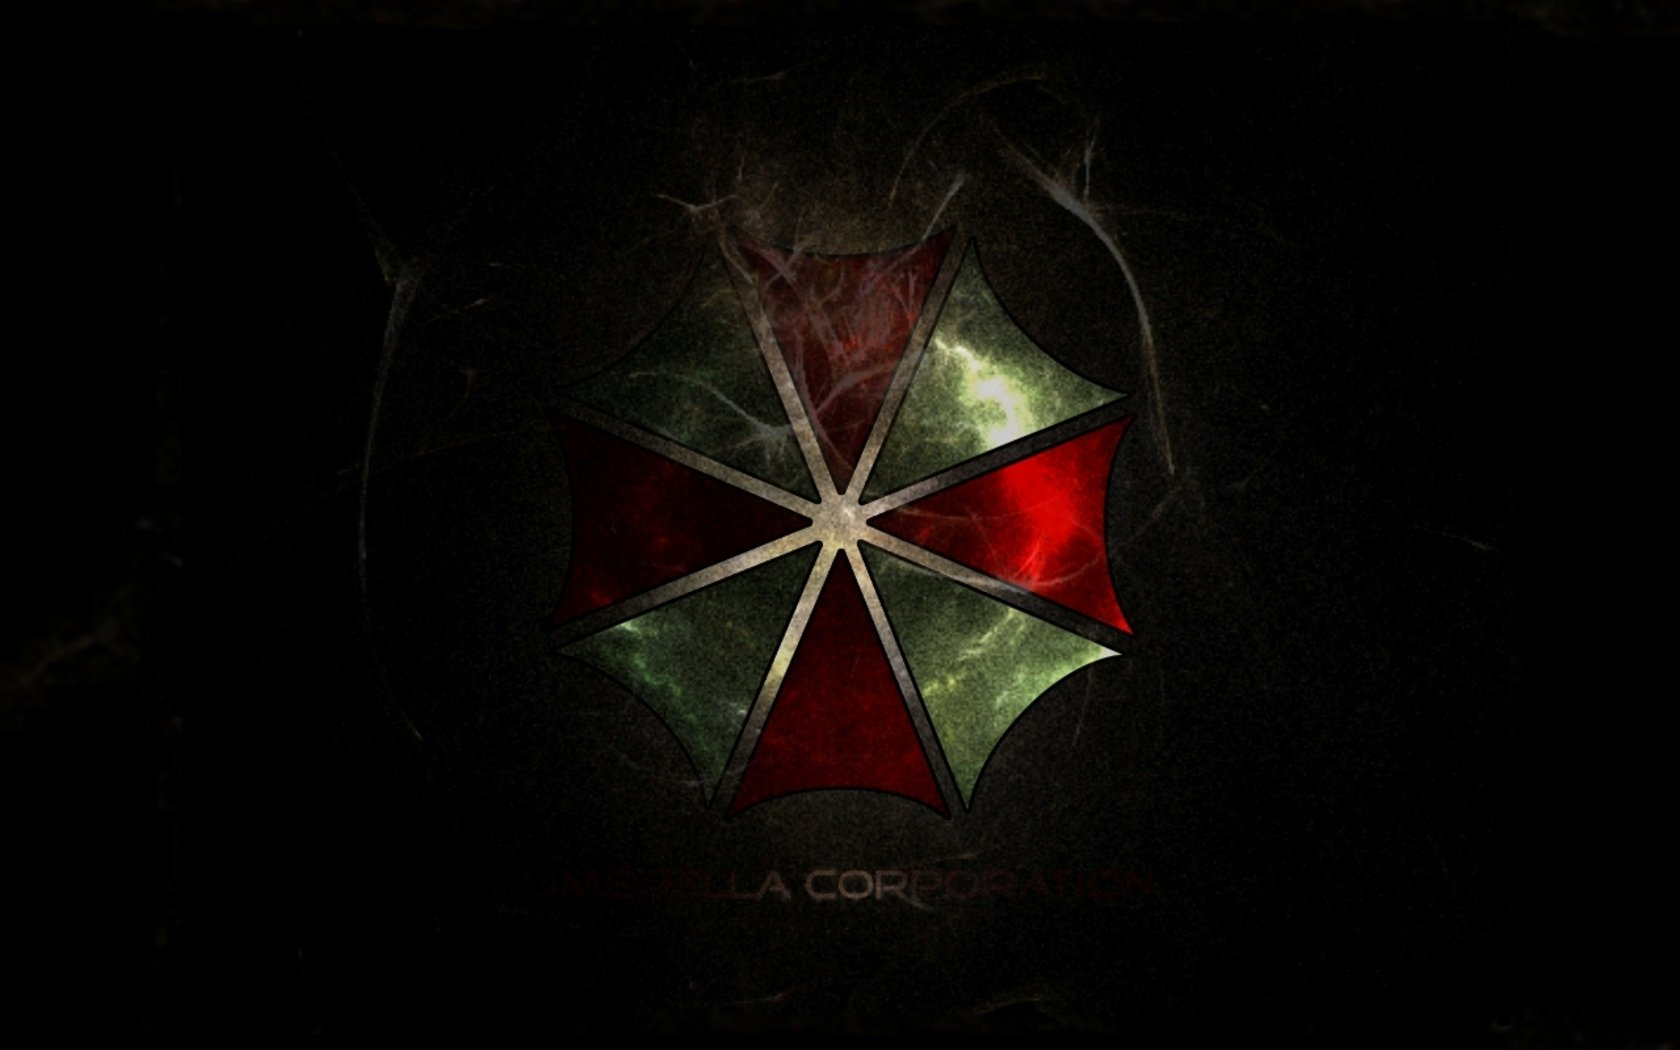 6 umbrella corporation hd wallpapers background images resident evil umbrella corporation hd wallpaper background image id316451 voltagebd Images